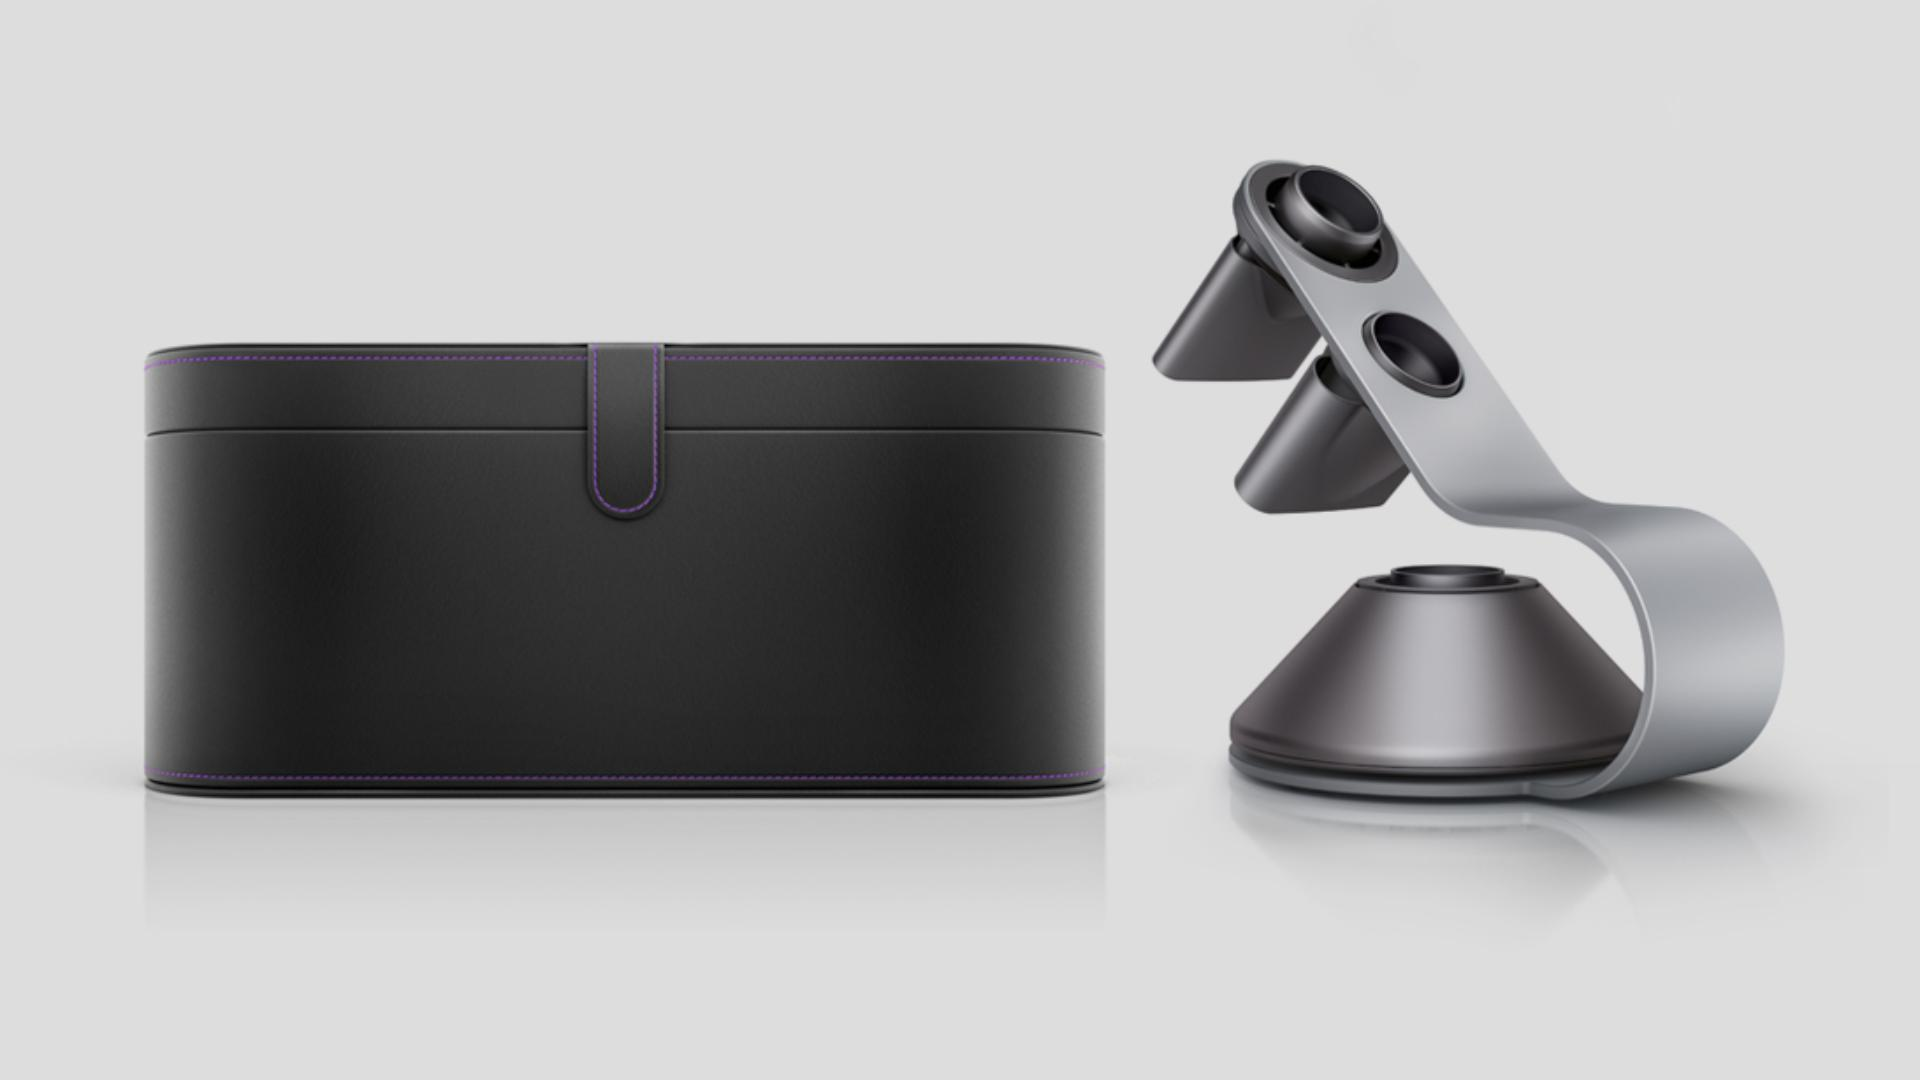 Dyson Supersonic™ hair dryer presentation case and stand